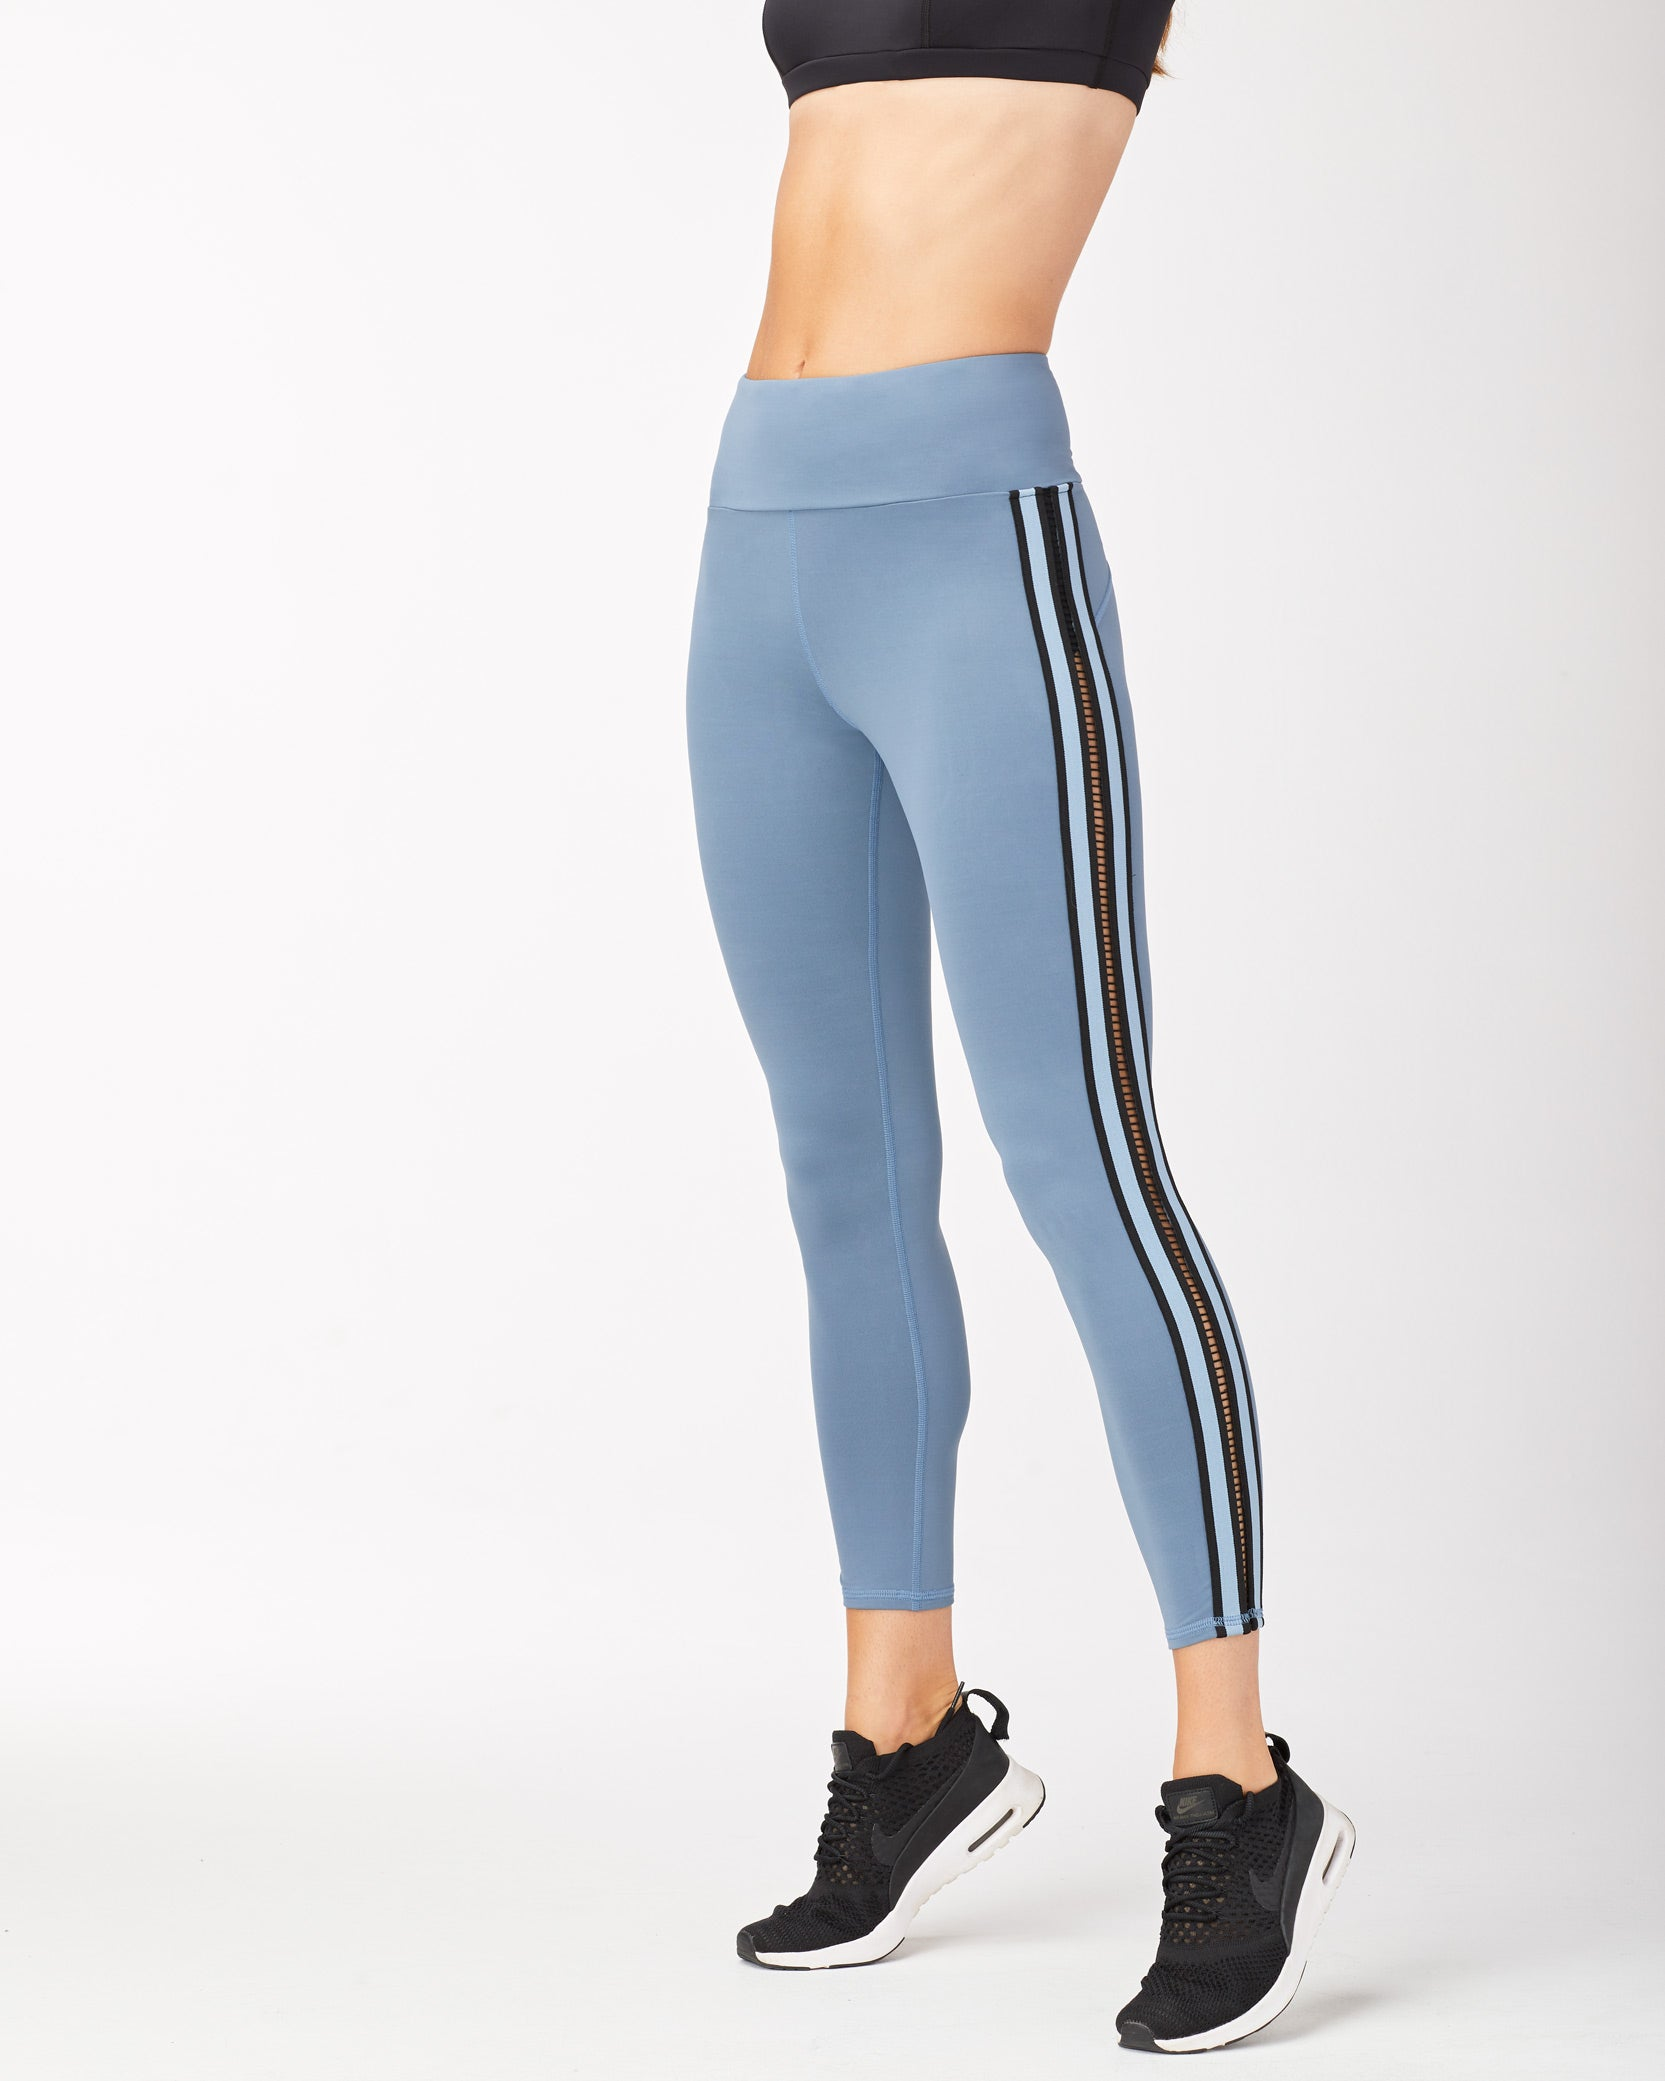 le-mans-high-waisted-legging-storm-blue